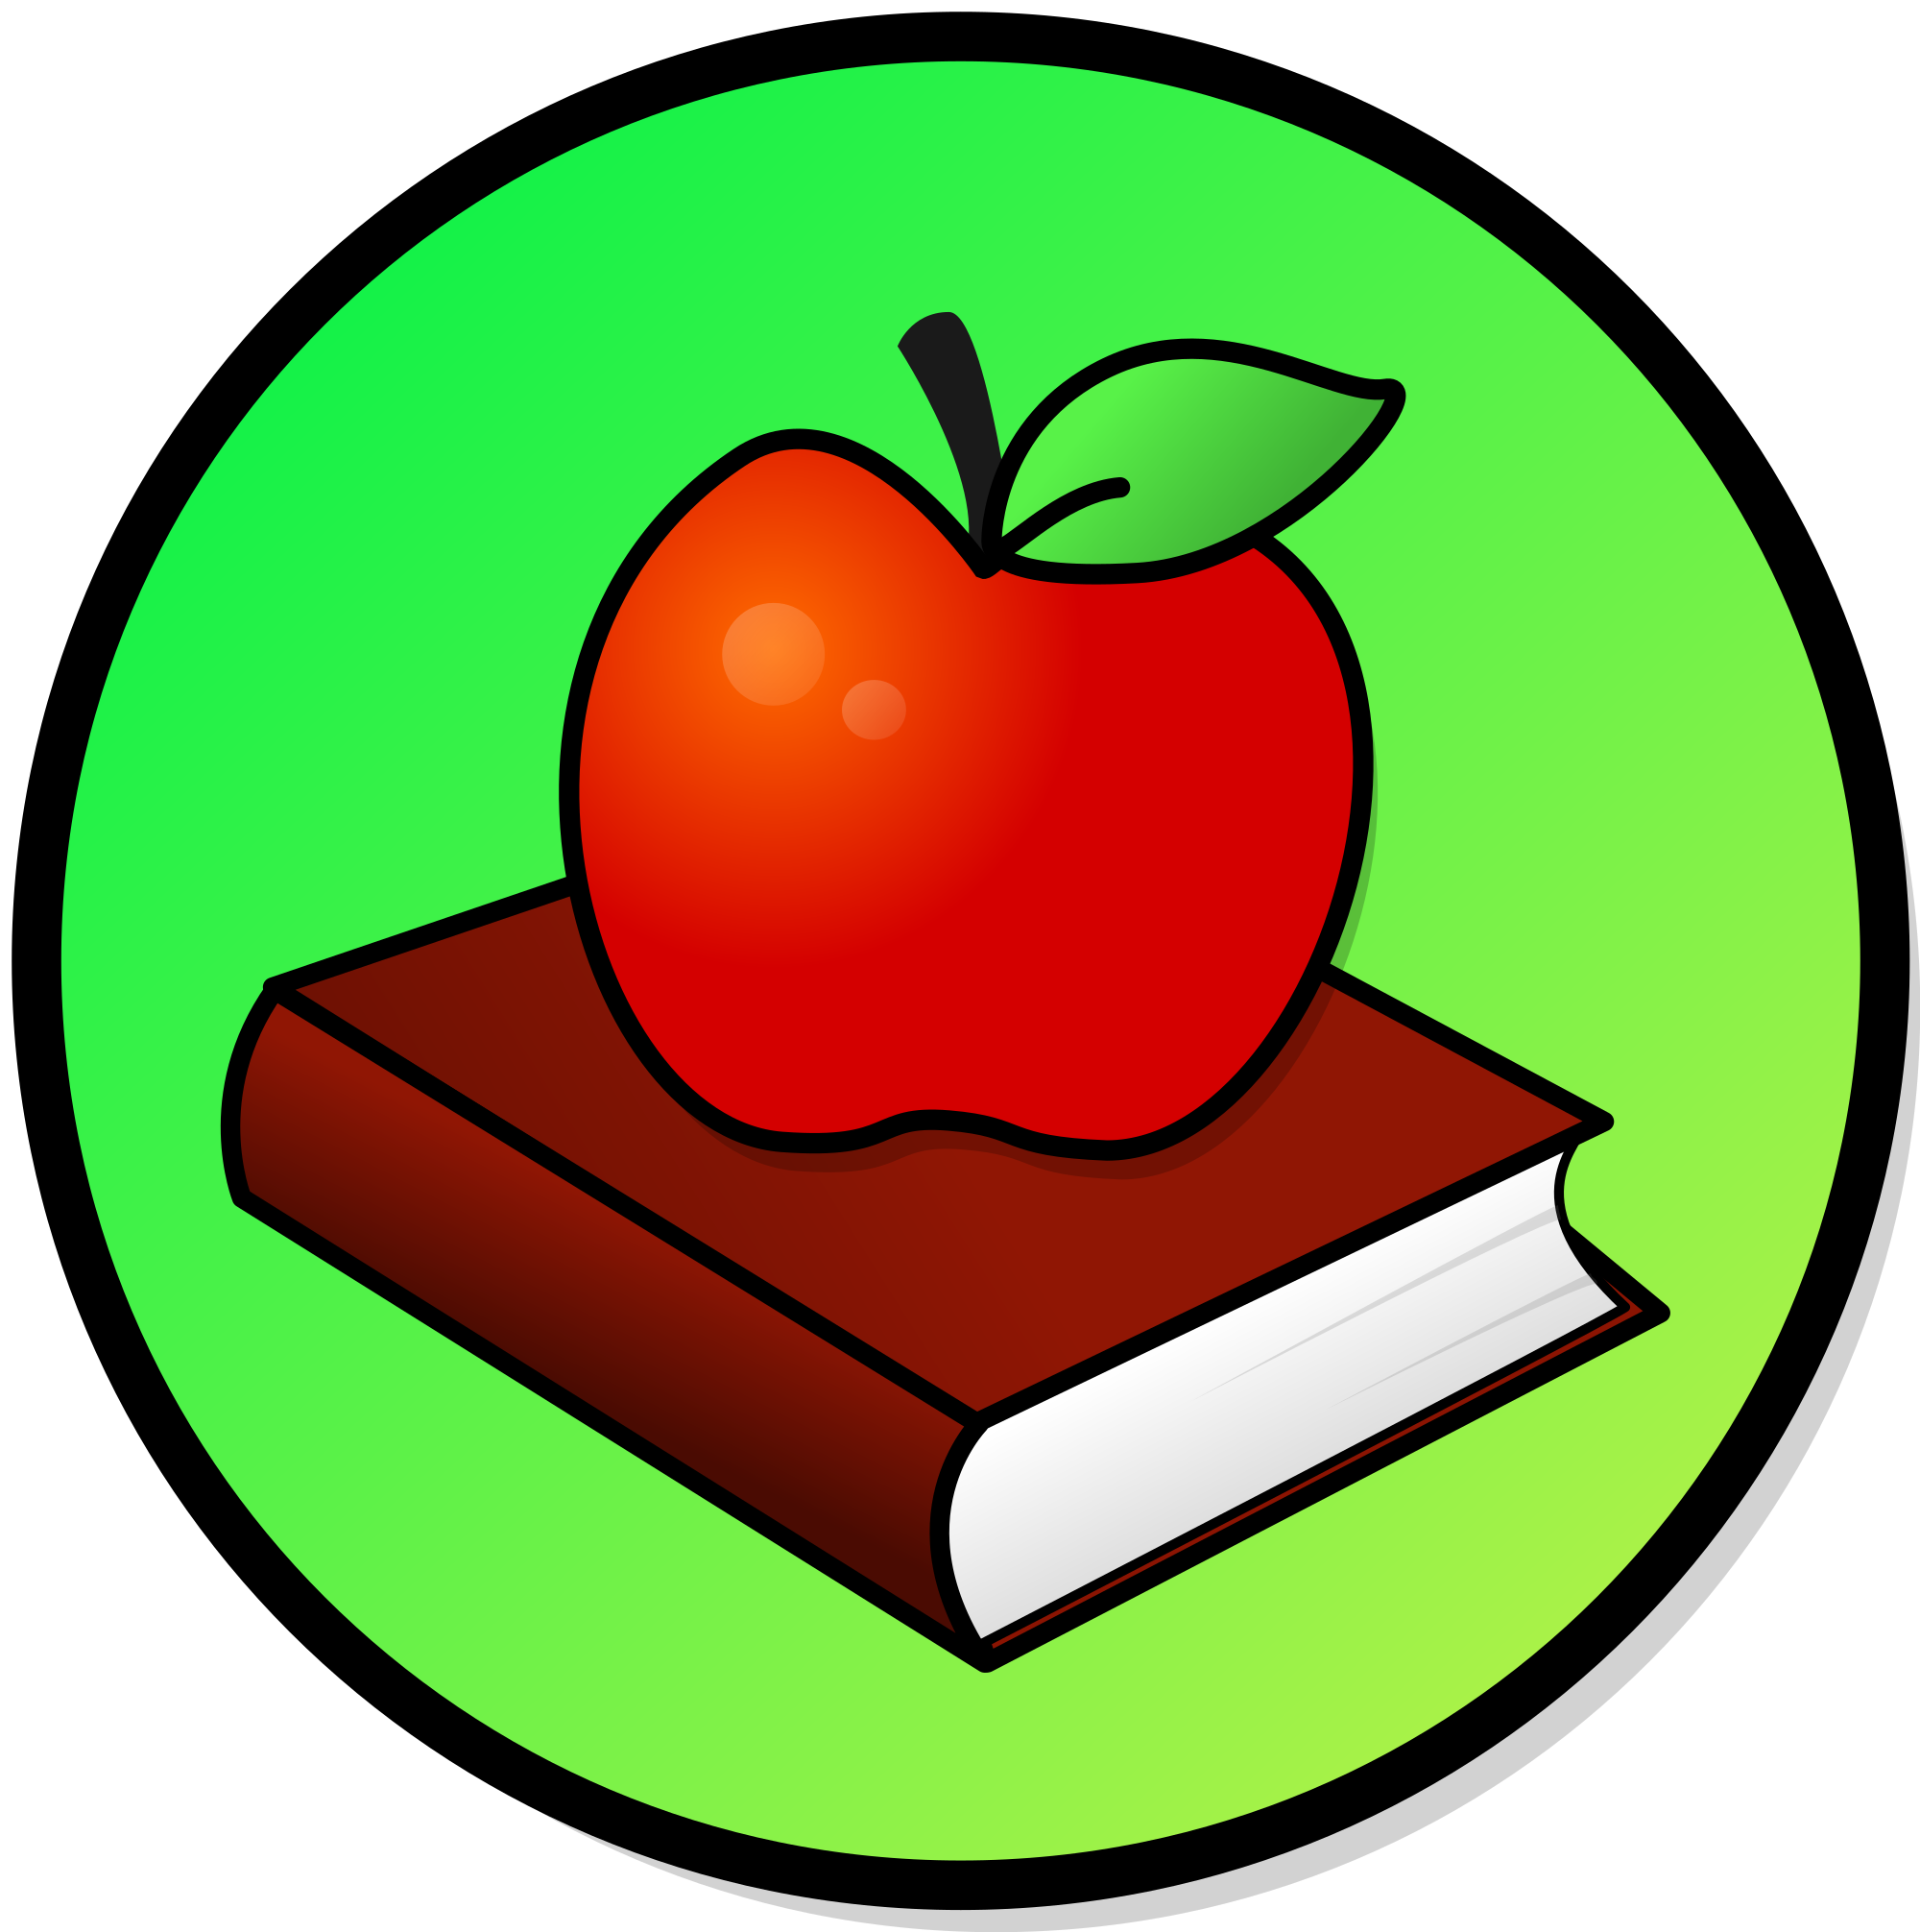 Book apple clipart clipart free stock Apple And Book PNG Transparent Apple And Book.PNG Images. | PlusPNG clipart free stock